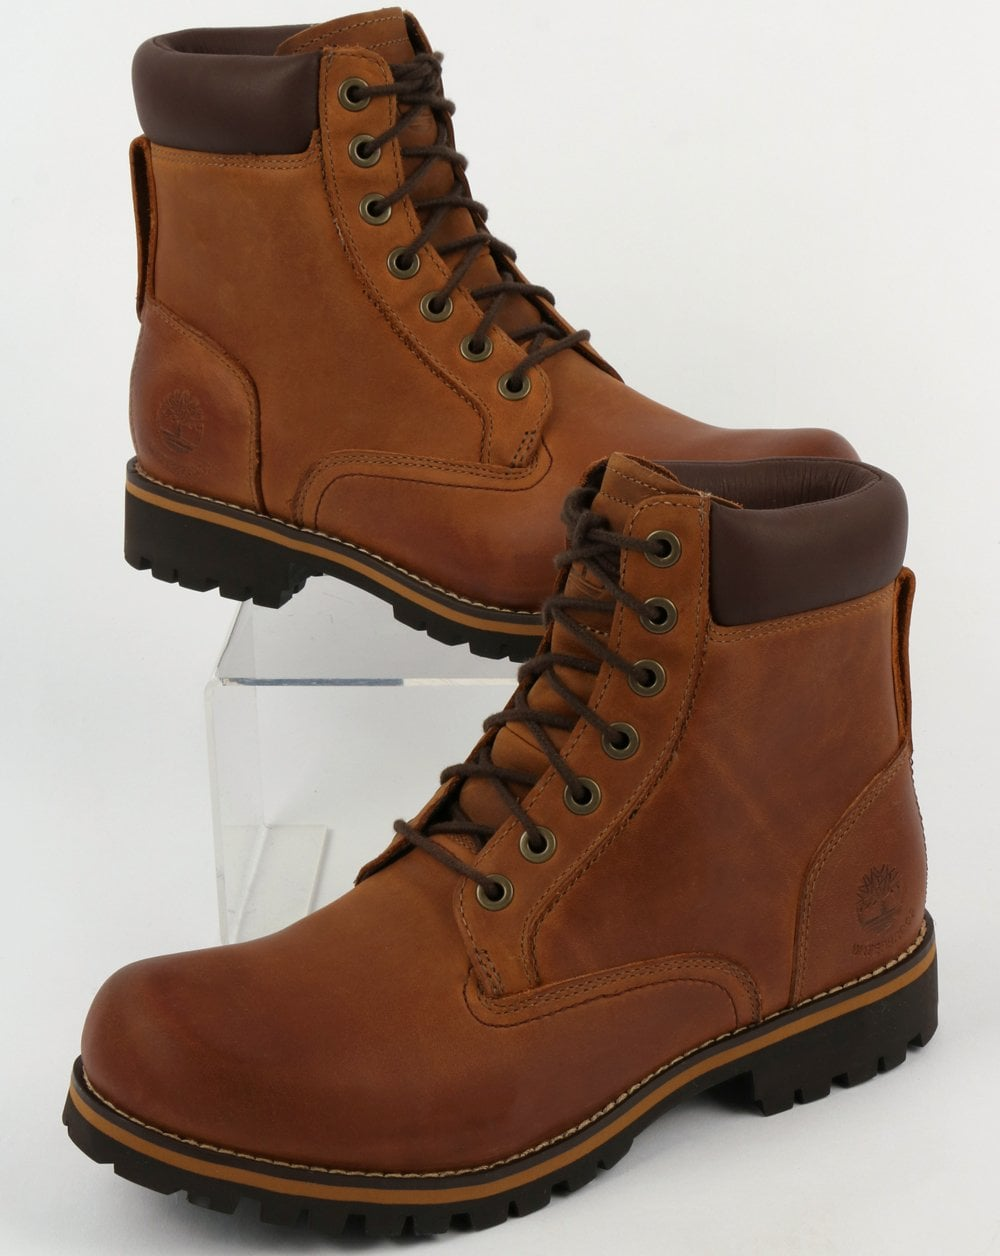 00915f663ade Timberland rugged inch plain toe copper roughcut jpg 1000x1256 Copper timberland  boots